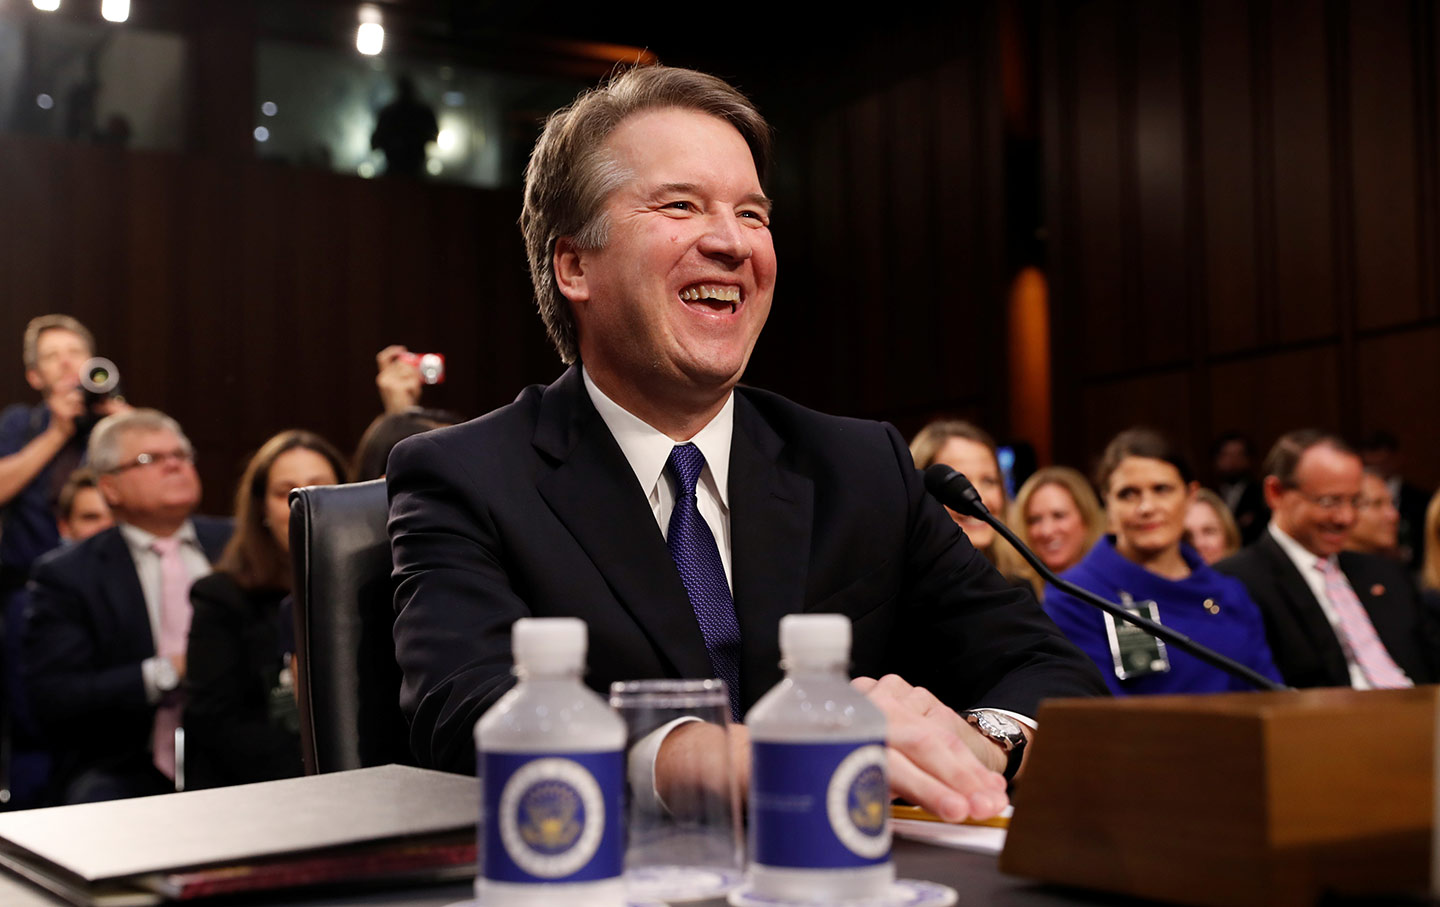 Brett Kavanaugh Laughing